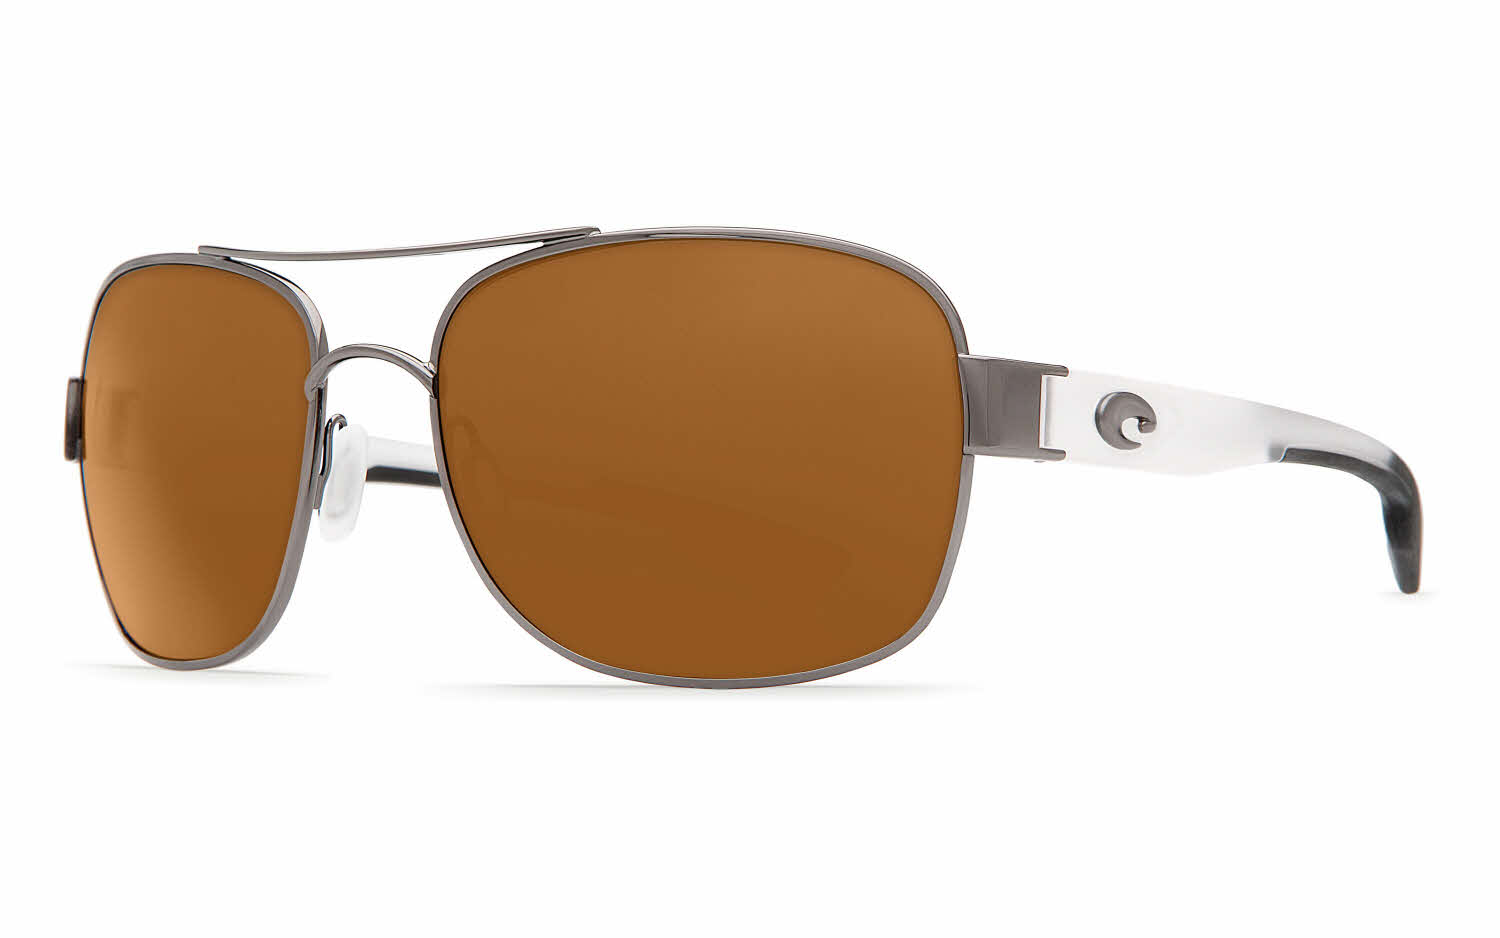 Costa Cocos Prescription Sunglasses